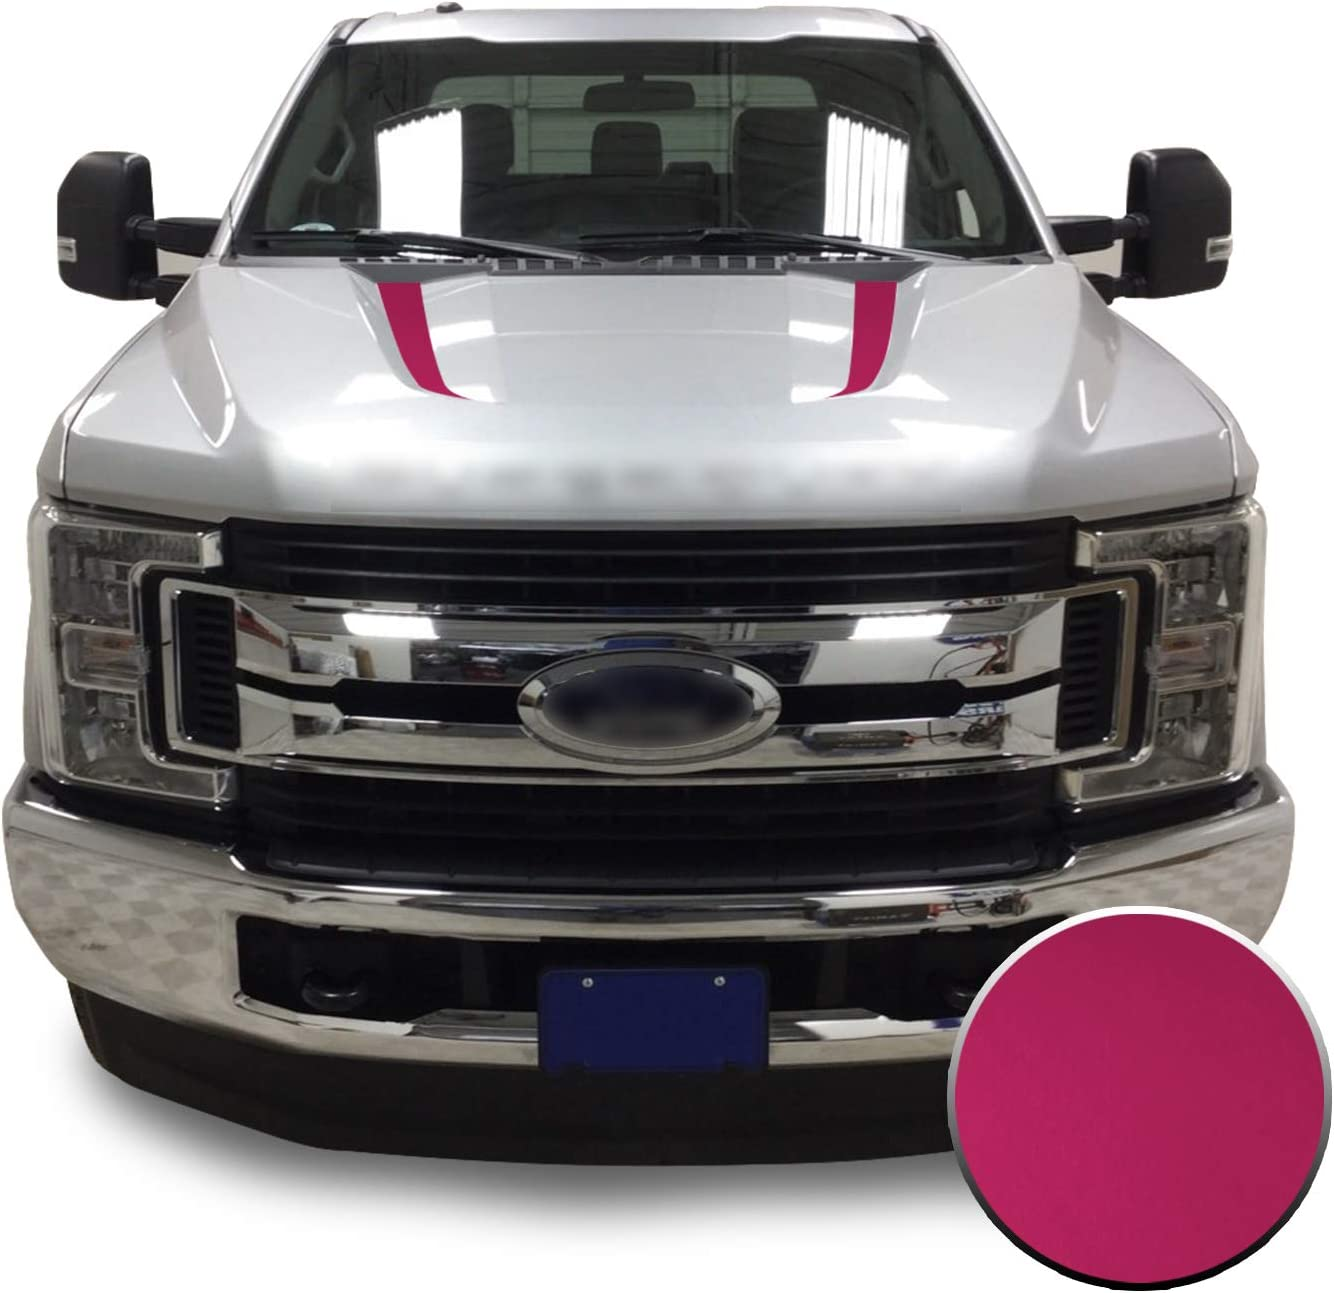 Optix Hood Spears Stripes Vinyl Decal Overlay Wrap Trim Inserts Sticker Compatible with and Fits Super Duty F250 F350 F450 2017 2018 2019 Metallic Matte Chrome Black